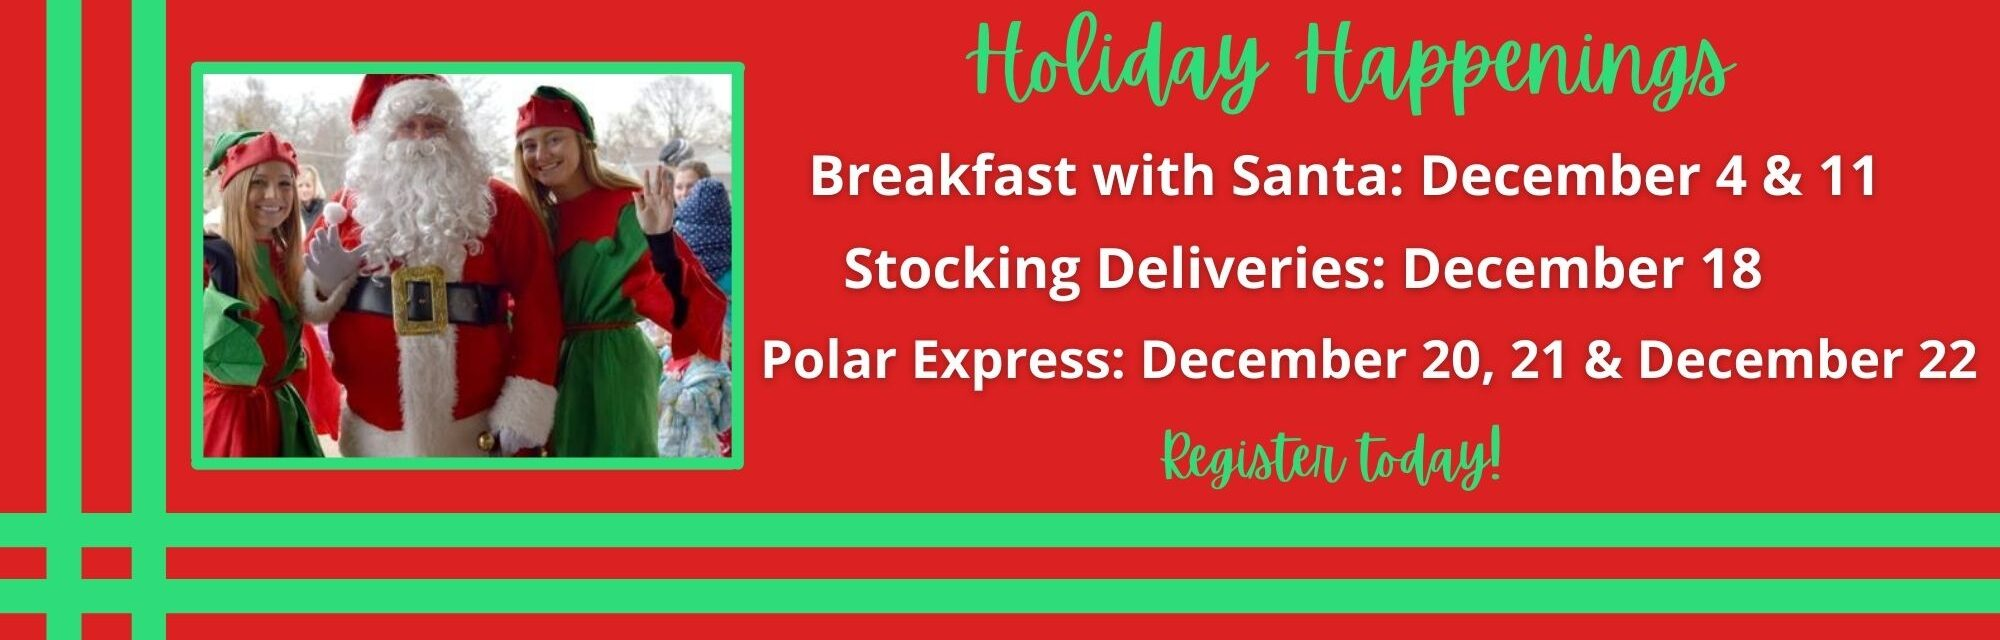 Picture of Santa and Elves with holiday info